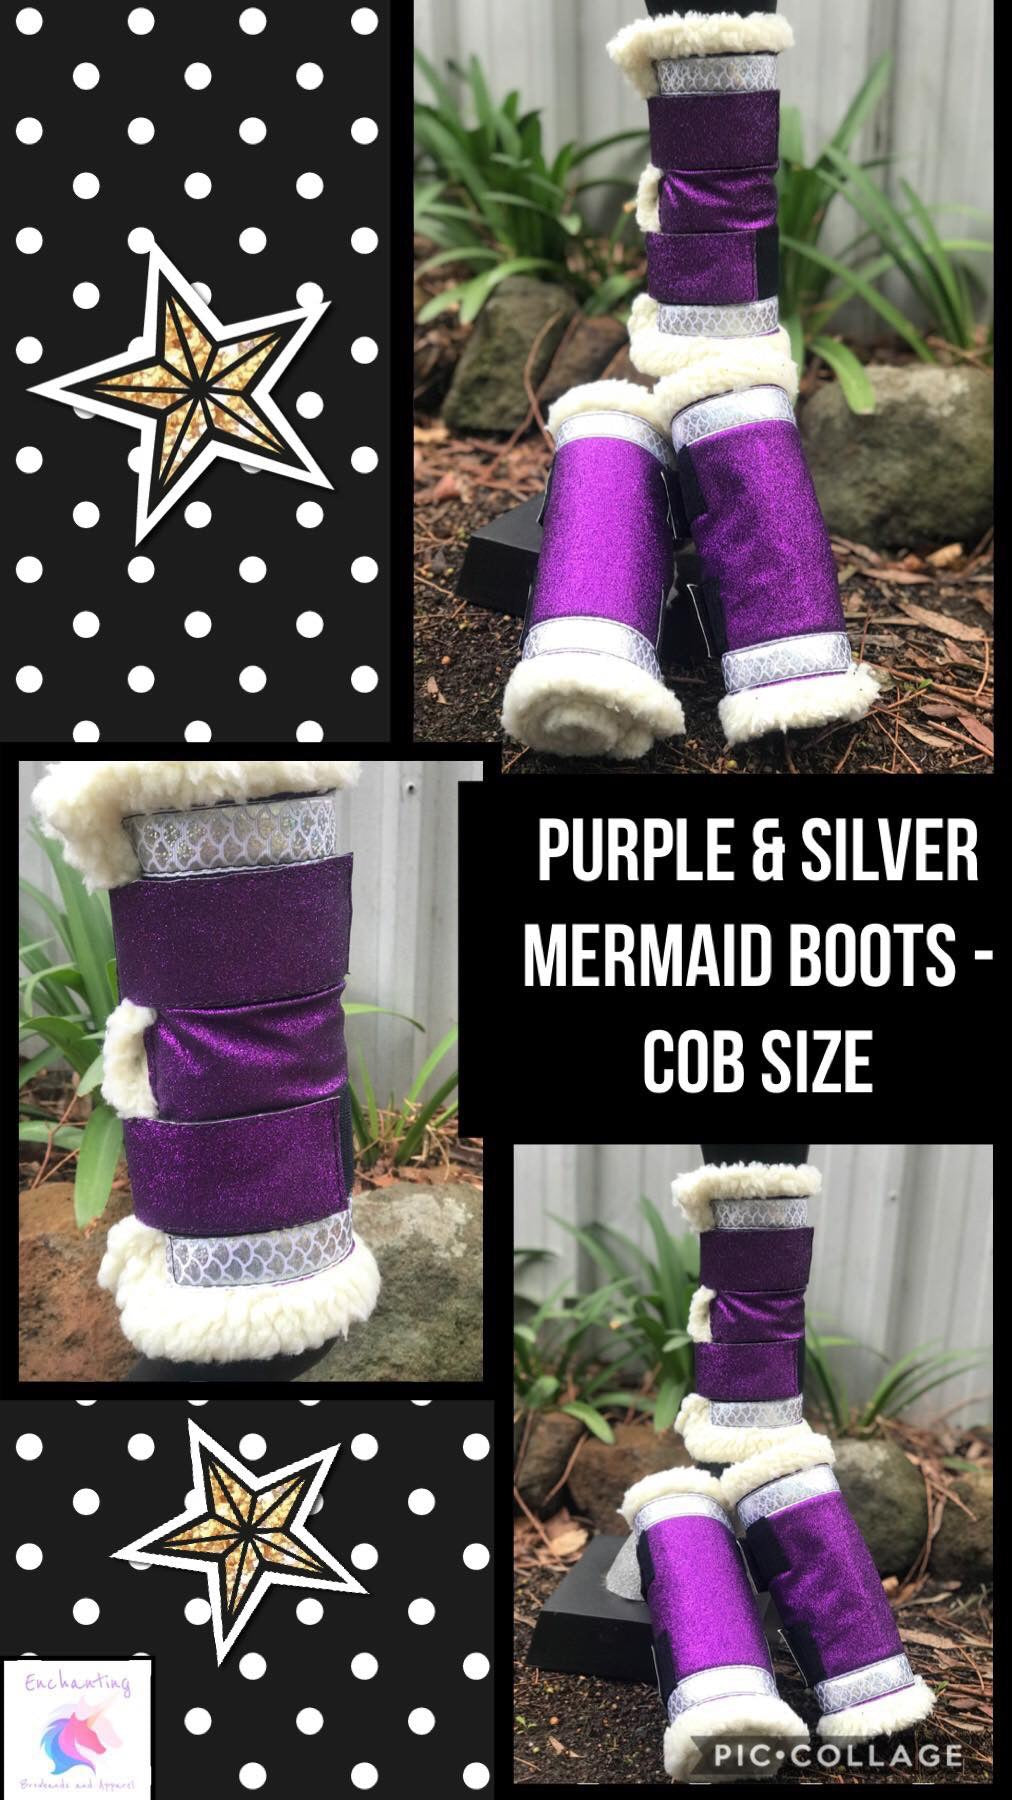 Purple & silver mermaid boots - set of 4